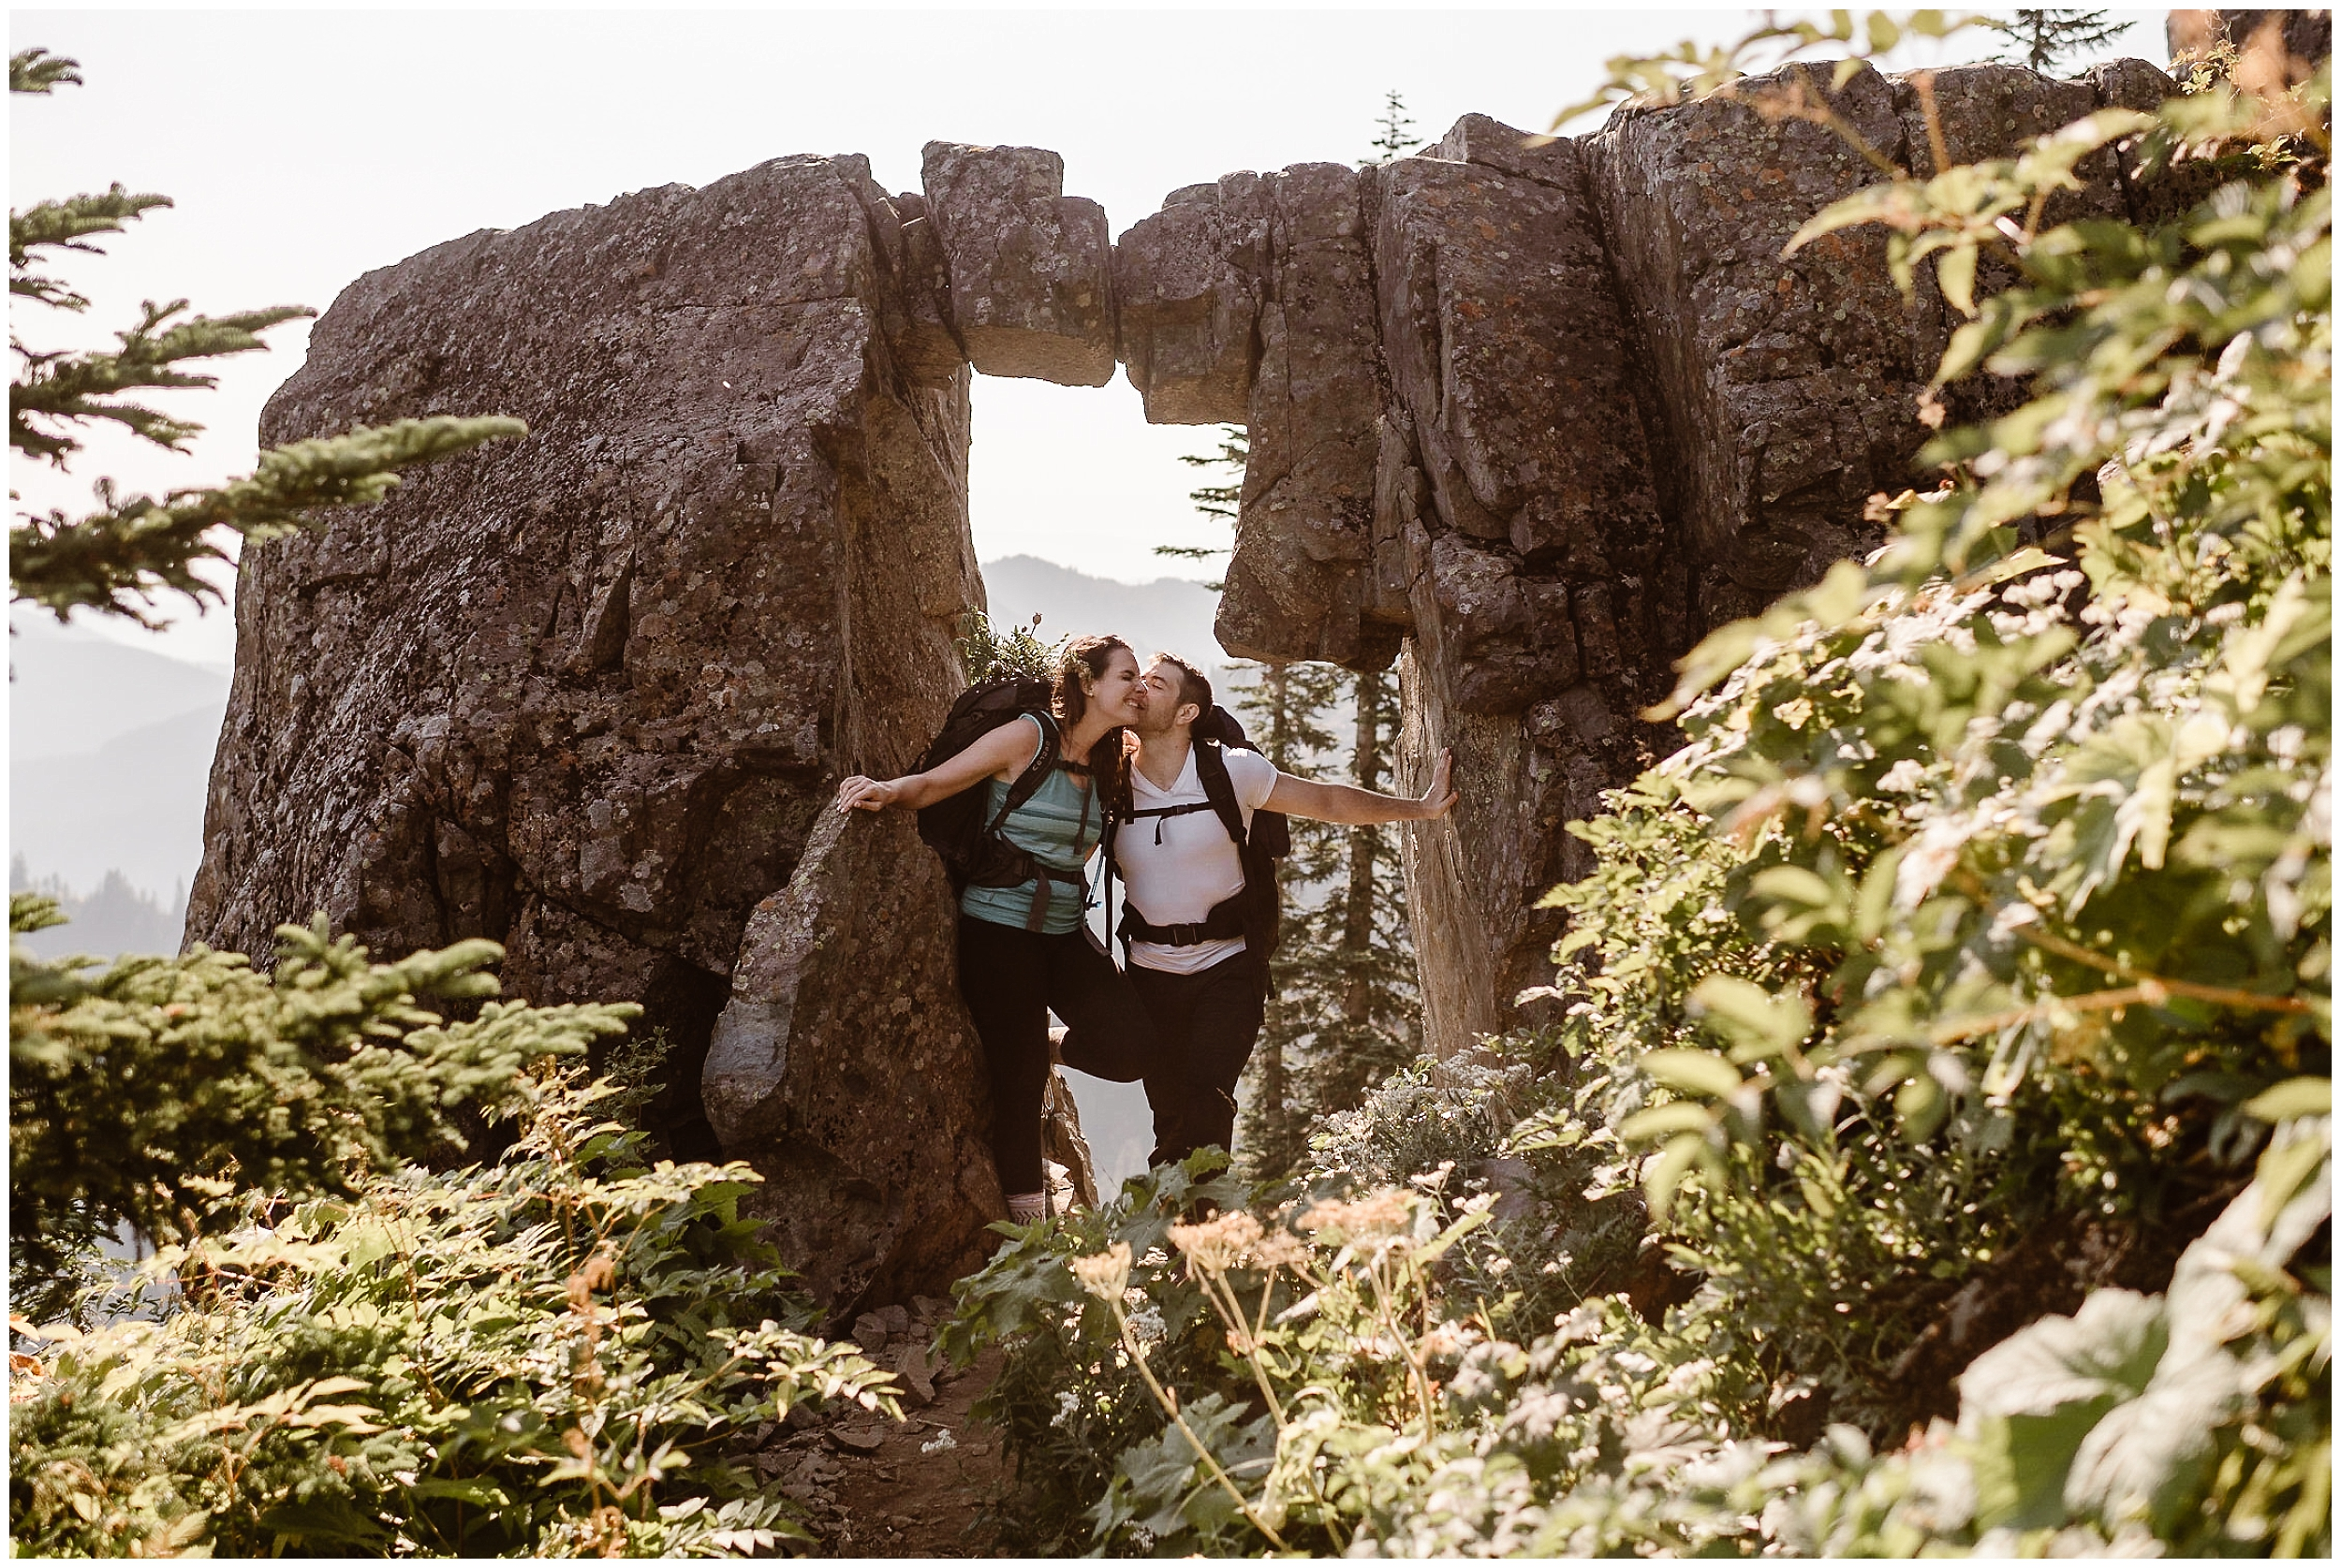 Lauryn and David pose beneath a rock formation during their Washington state elopement ceremony, During their hike down, they can finally see the trail they hiked up to elope in Washington state.